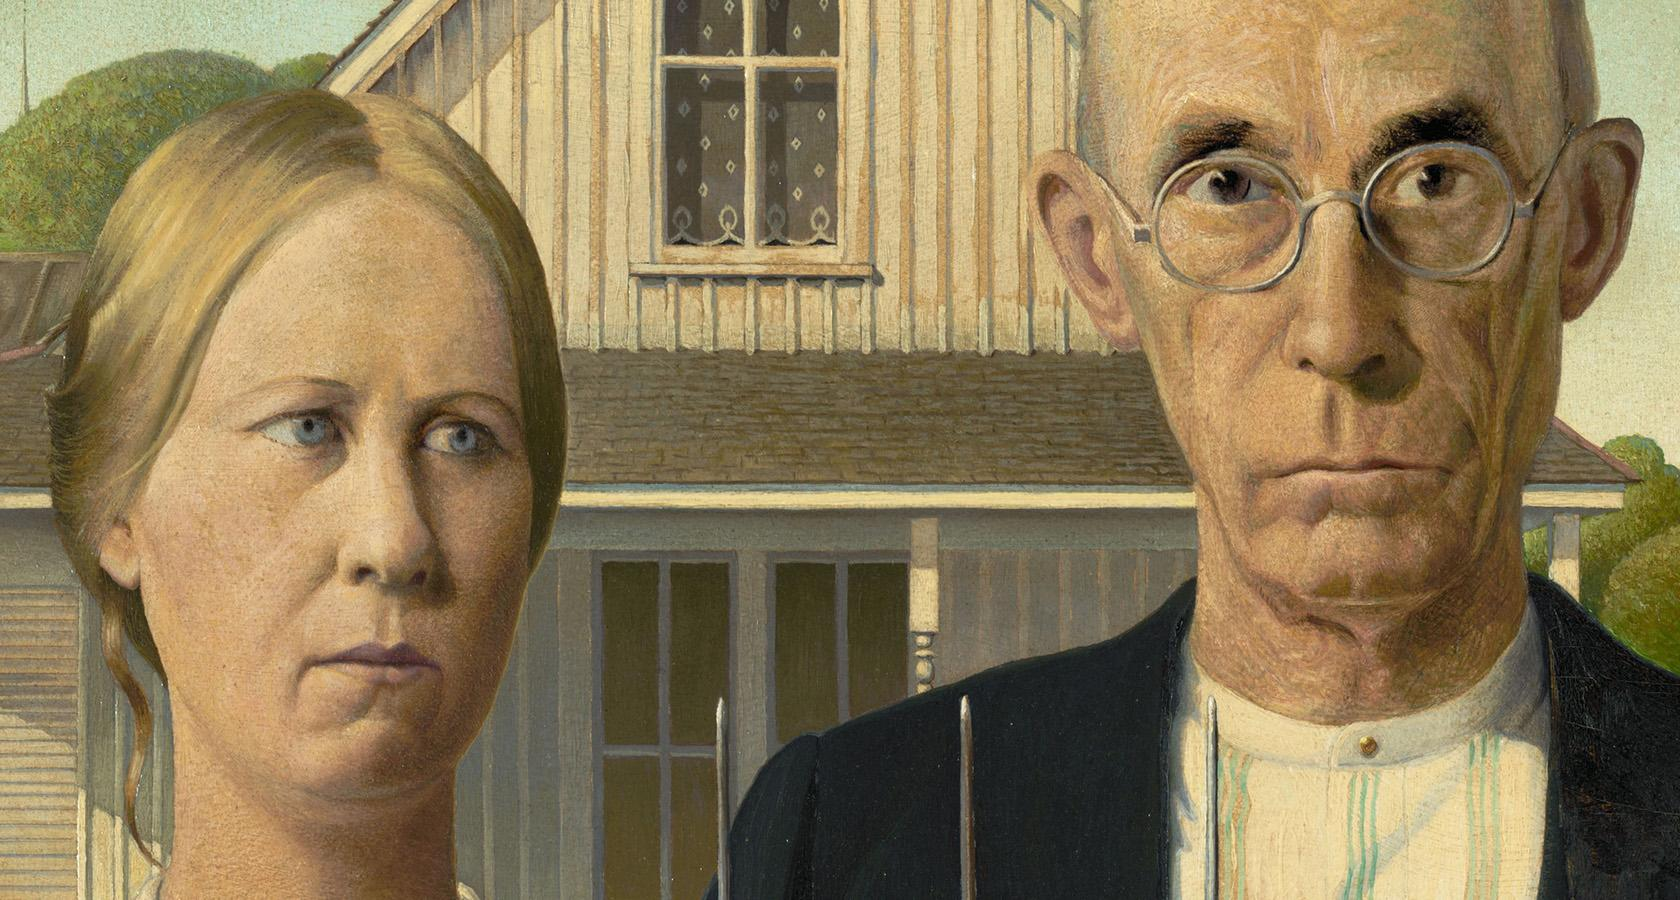 What is art? The American Gothic painting represents principles of art.